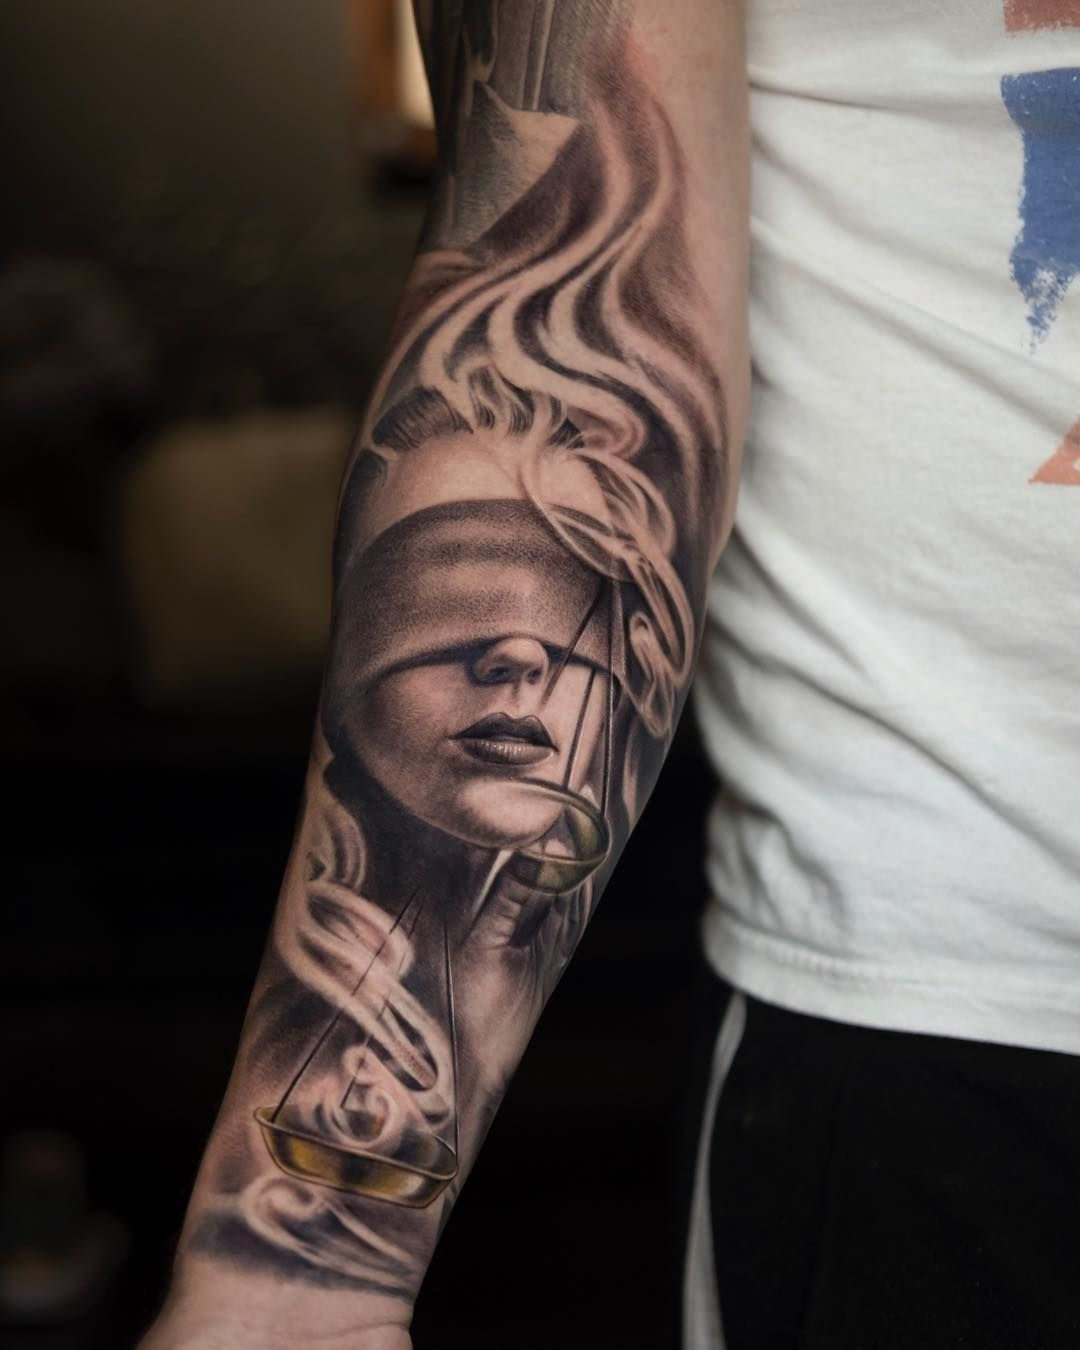 Tattoo Lady Justice: Jose Contreras (@joseecd) On